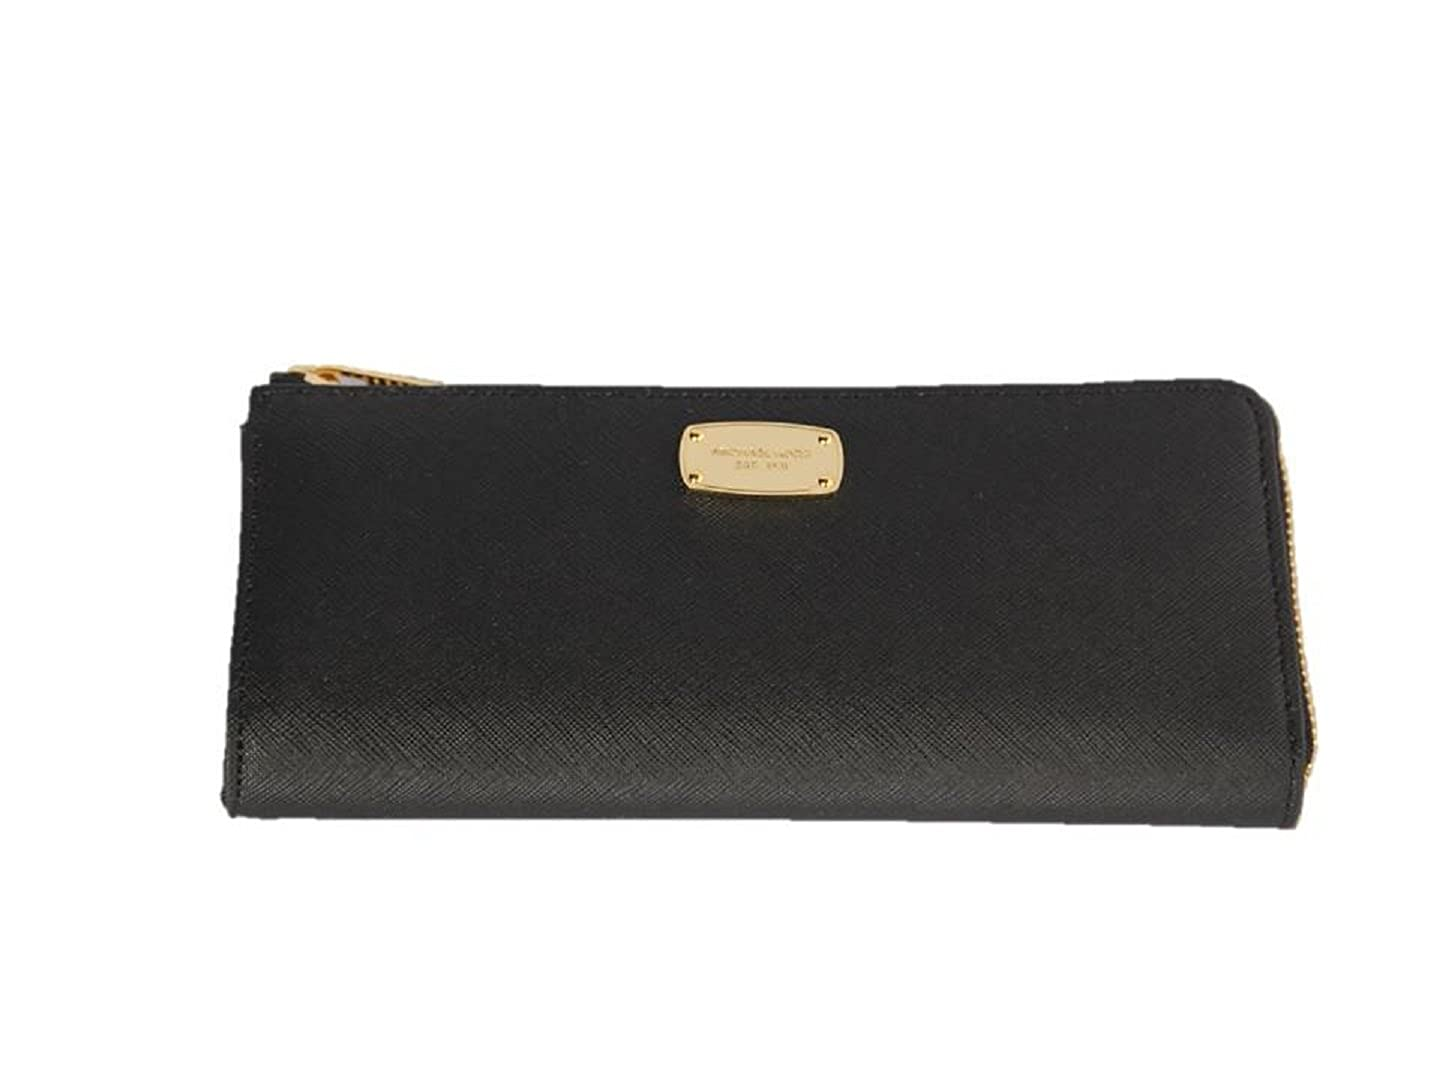 0b044f790e9b Top14: Michael Kors Jet Set Travel Large Three Quarter Zip Around Leather  Wallet